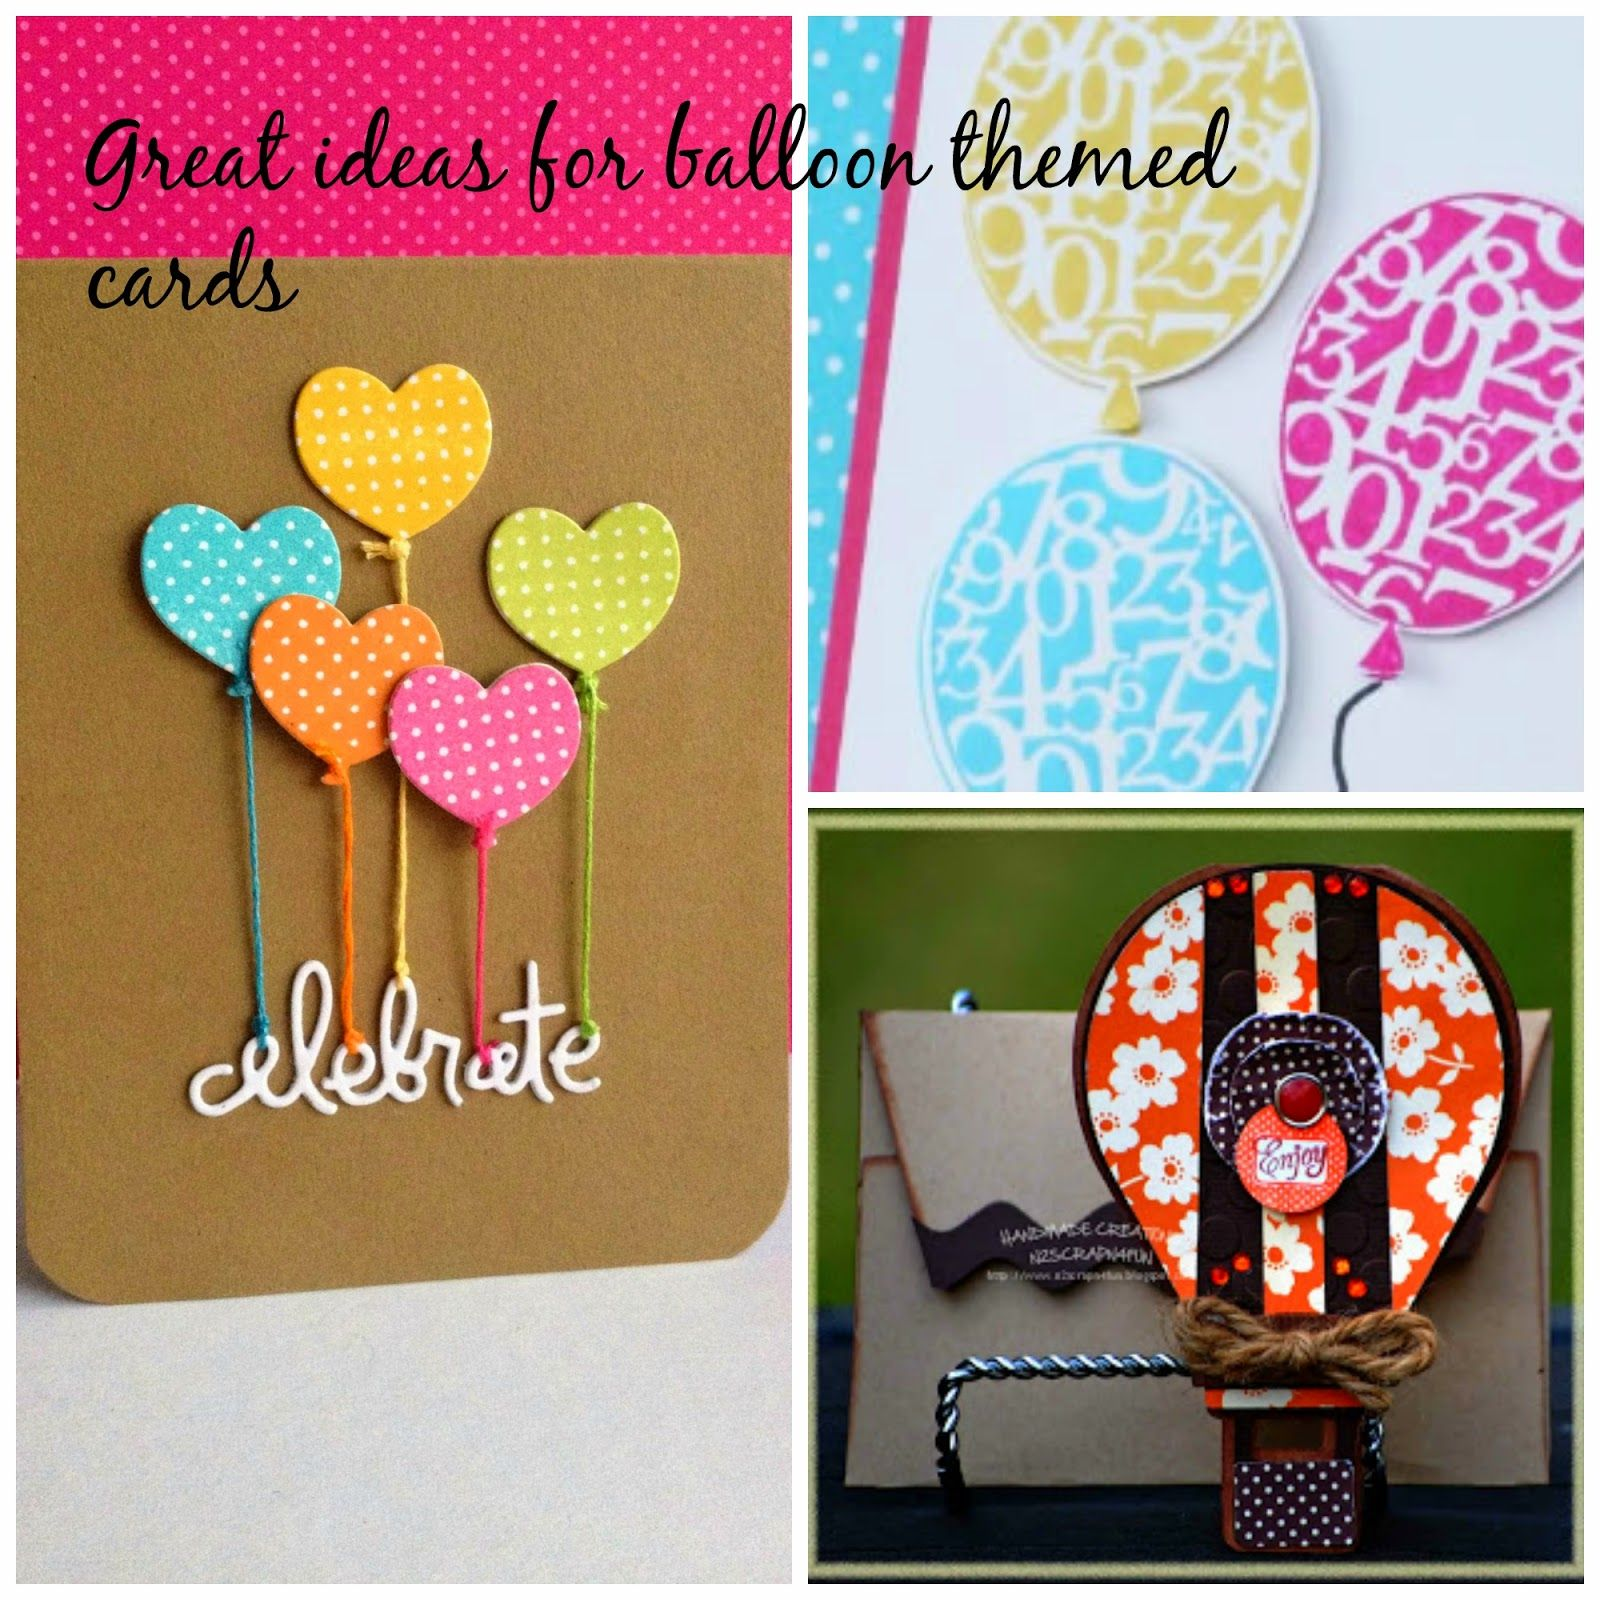 5 great ideas for cute and easy balloon themed handmade greeting 5 great ideas for cute and easy balloon themed handmade greeting cards kristyandbryce Images